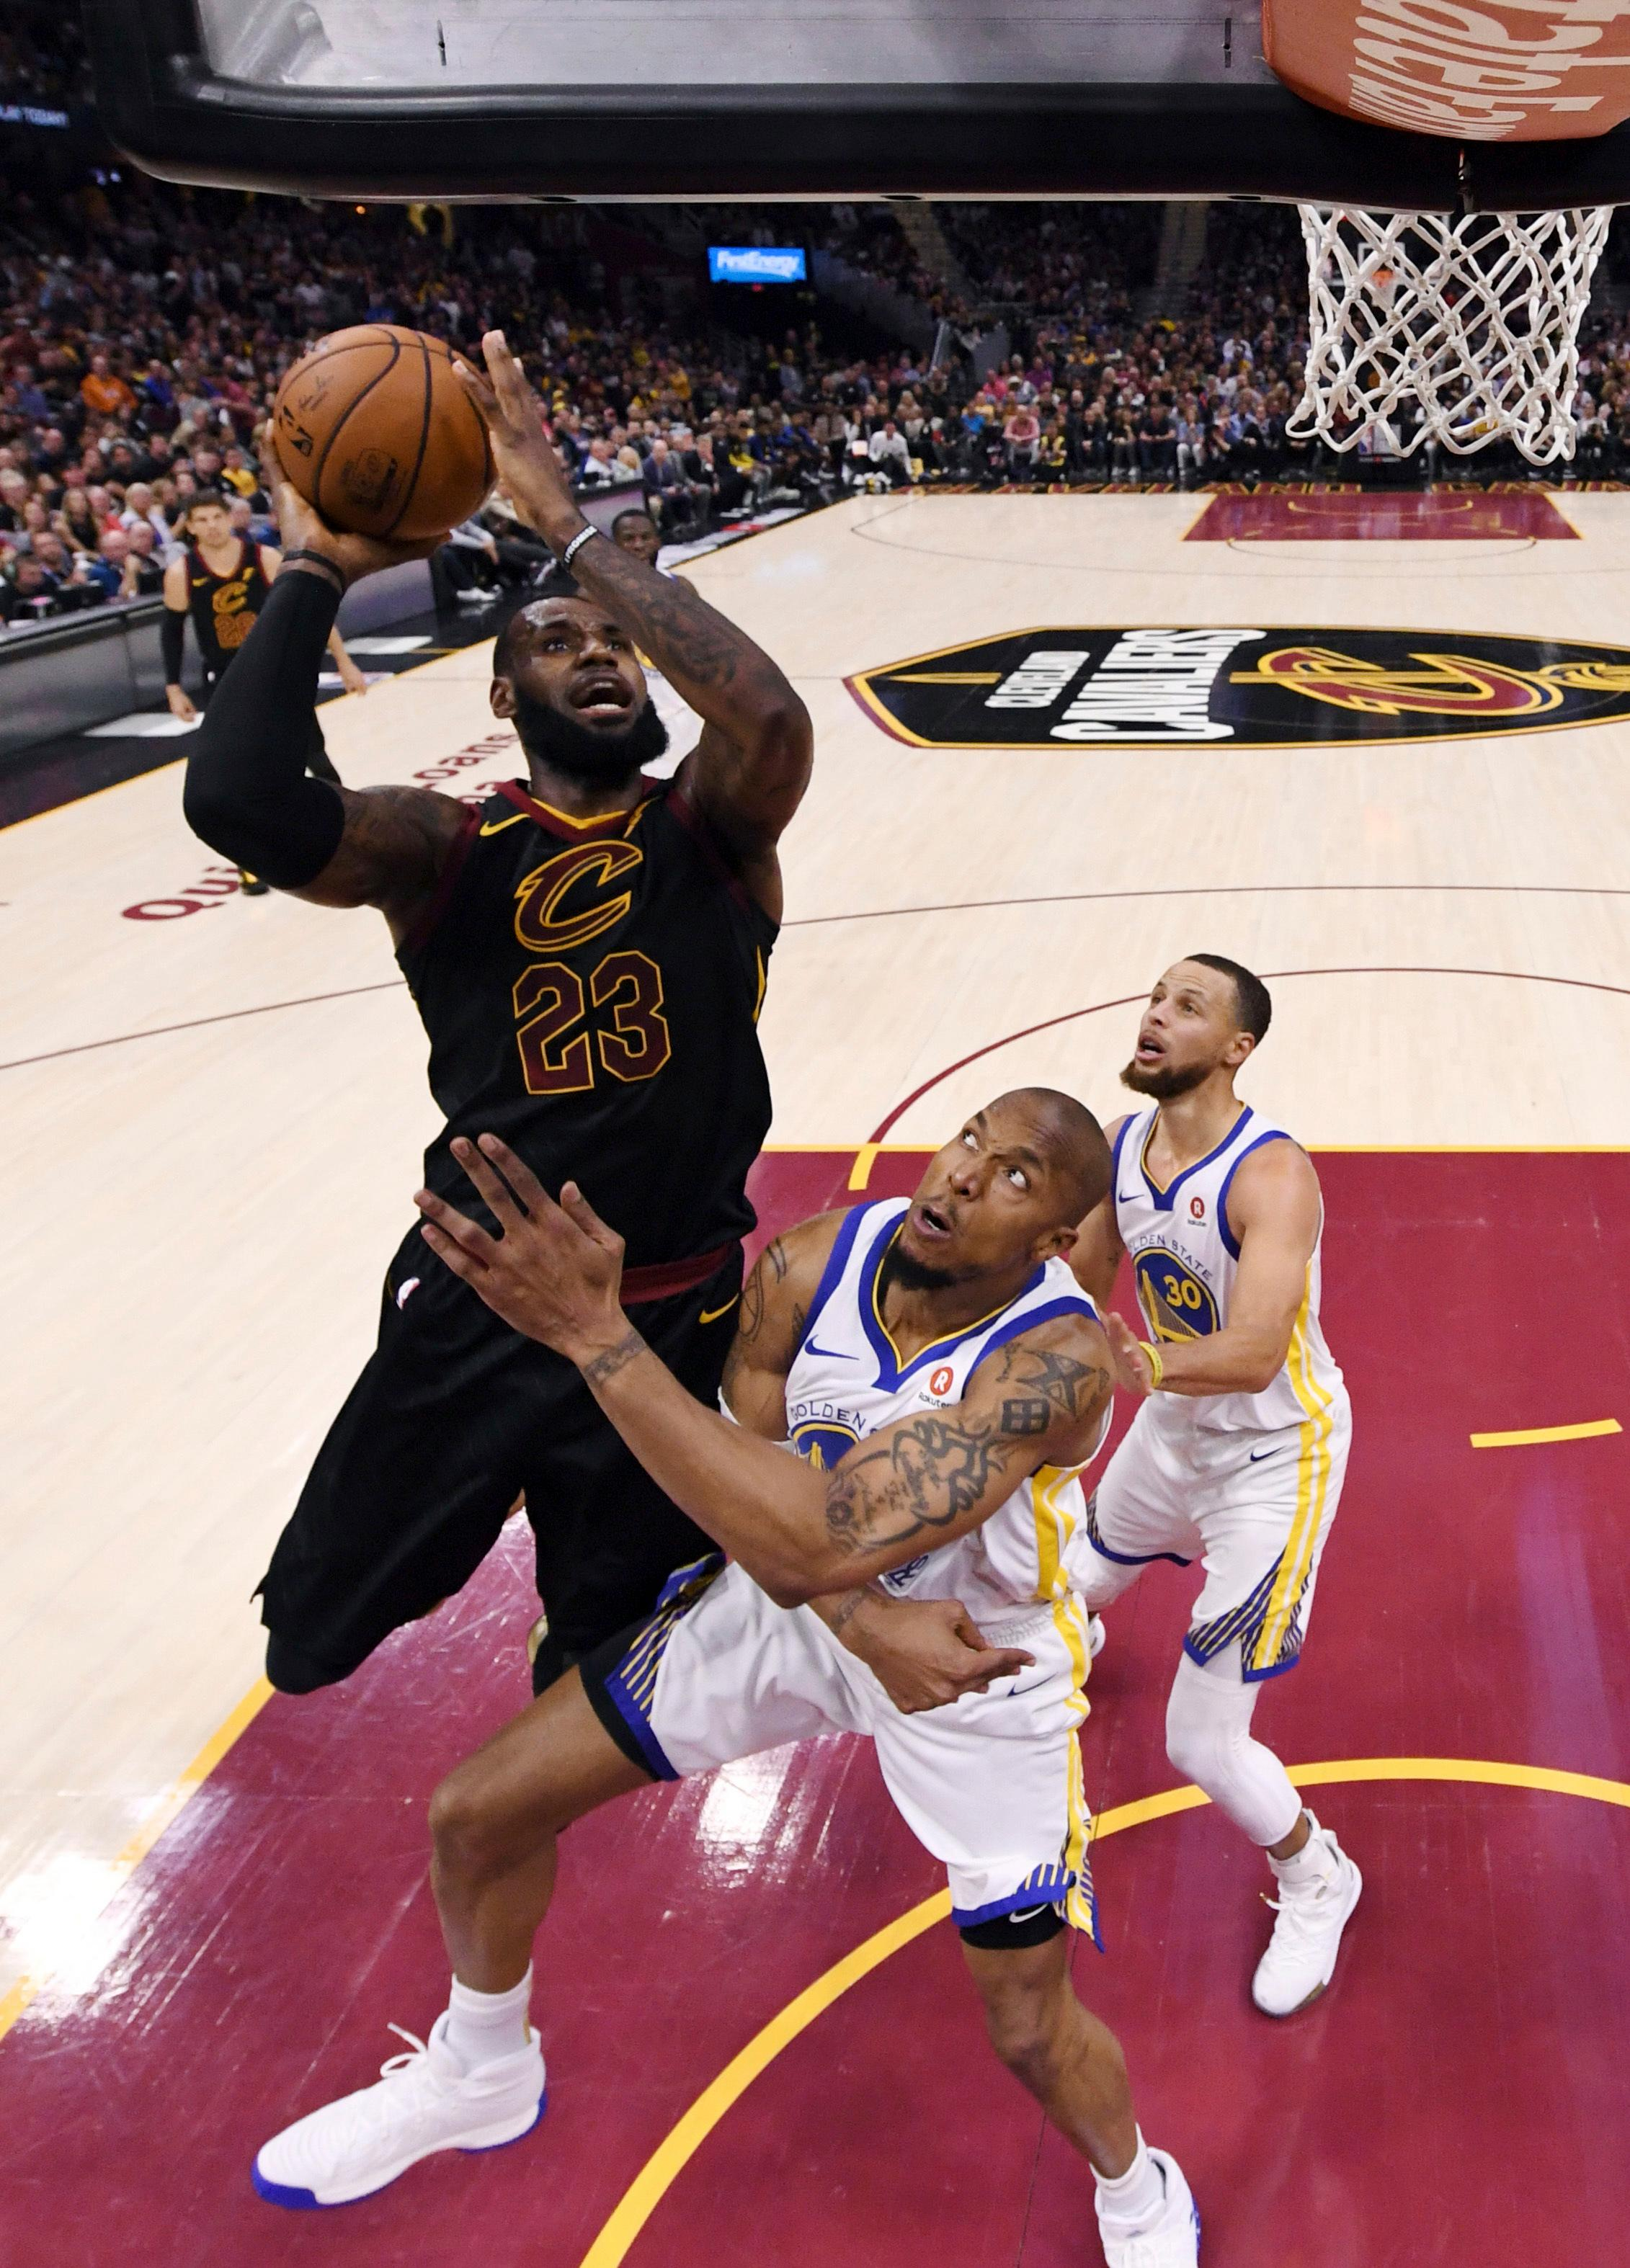 Cleveland Cavaliers' LeBron James shoots over Golden State Warriors' David West during the first half of Game 4 of basketball's NBA Finals, Friday, June 8, 2018, in Cleveland. (Gregory Shamus/Pool Photo via AP)